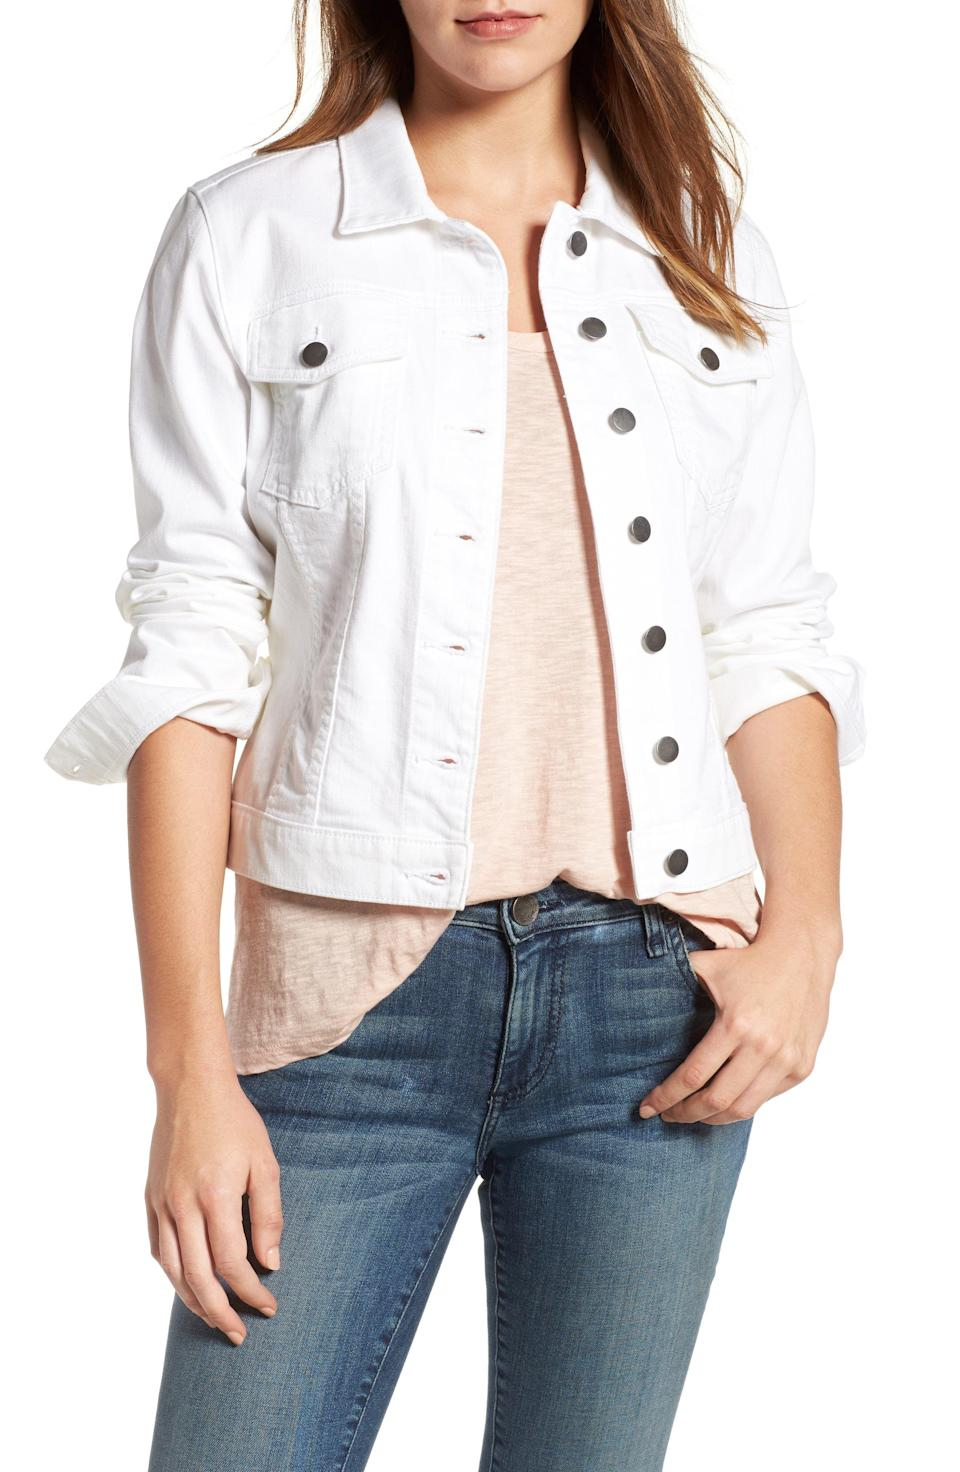 """<p><strong>KUT FROM THE KLOTH</strong></p><p>nordstrom.com</p><p><strong>$79.00</strong></p><p><a href=""""https://go.redirectingat.com?id=74968X1596630&url=https%3A%2F%2Fshop.nordstrom.com%2Fs%2Fkut-from-the-kloth-helena-denim-jacket-regular-petite%2F3922204&sref=https%3A%2F%2Fwww.prevention.com%2Fbeauty%2Fstyle%2Fg37148346%2Fbest-jean-jackets-for-women%2F"""" rel=""""nofollow noopener"""" target=""""_blank"""" data-ylk=""""slk:Shop Now"""" class=""""link rapid-noclick-resp"""">Shop Now</a></p><p>A white denim jacket will take you through the final days of summer in style. This one is styled with <strong>trendy detailing, including chest flap pockets and shank-style buttons</strong>. It'll look great paired with classic blue jeans and <a href=""""https://www.prevention.com/beauty/style/g36040203/comfortable-wedge-sandals/"""" rel=""""nofollow noopener"""" target=""""_blank"""" data-ylk=""""slk:sandals"""" class=""""link rapid-noclick-resp"""">sandals</a>. </p>"""